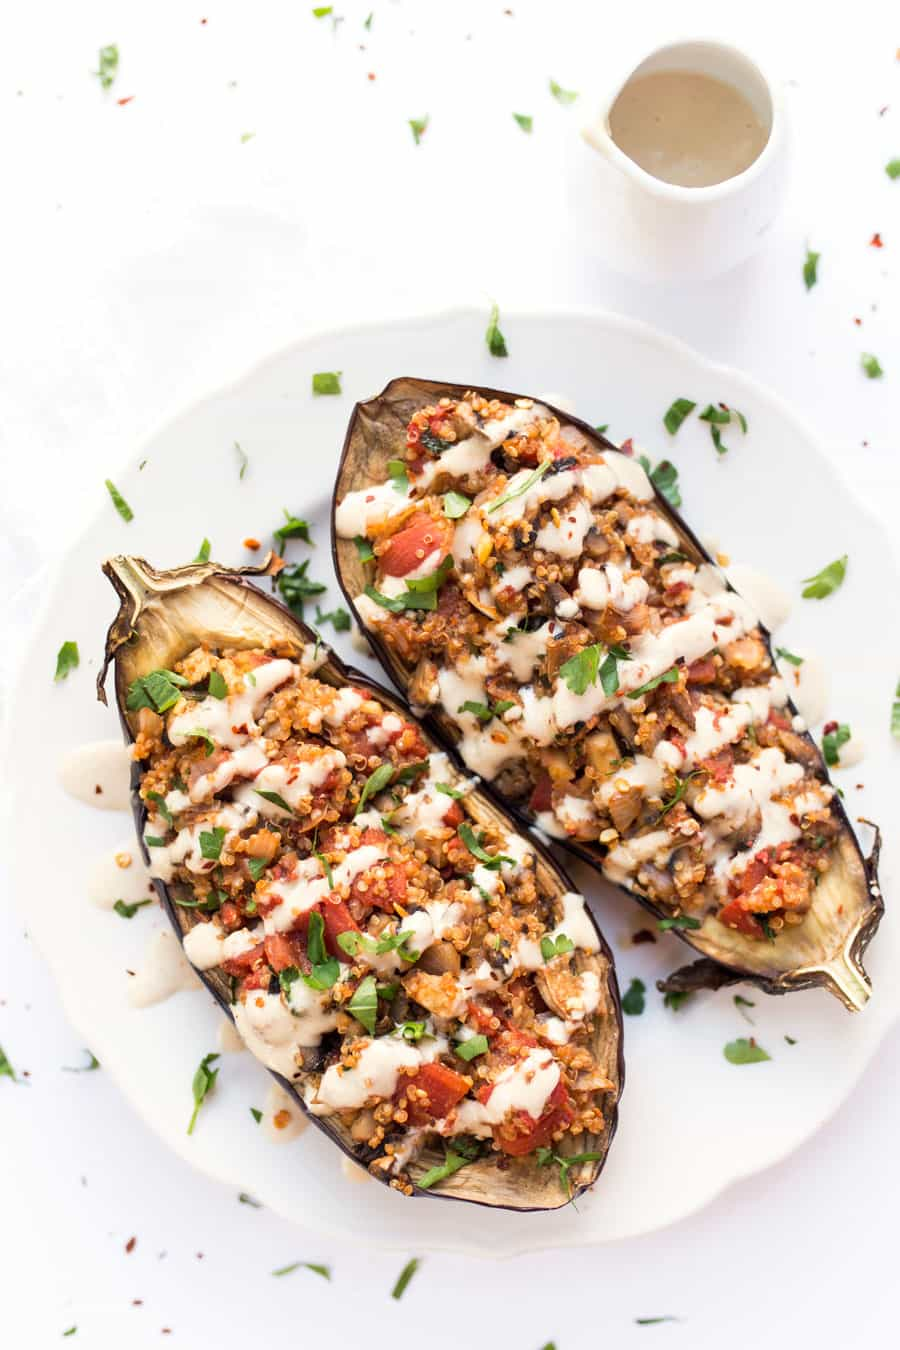 Quinoa Stuffed Eggplant - with mushrooms, tomatoes and a creamy tahini sauce on top! Ready in just 30 MINUTES!